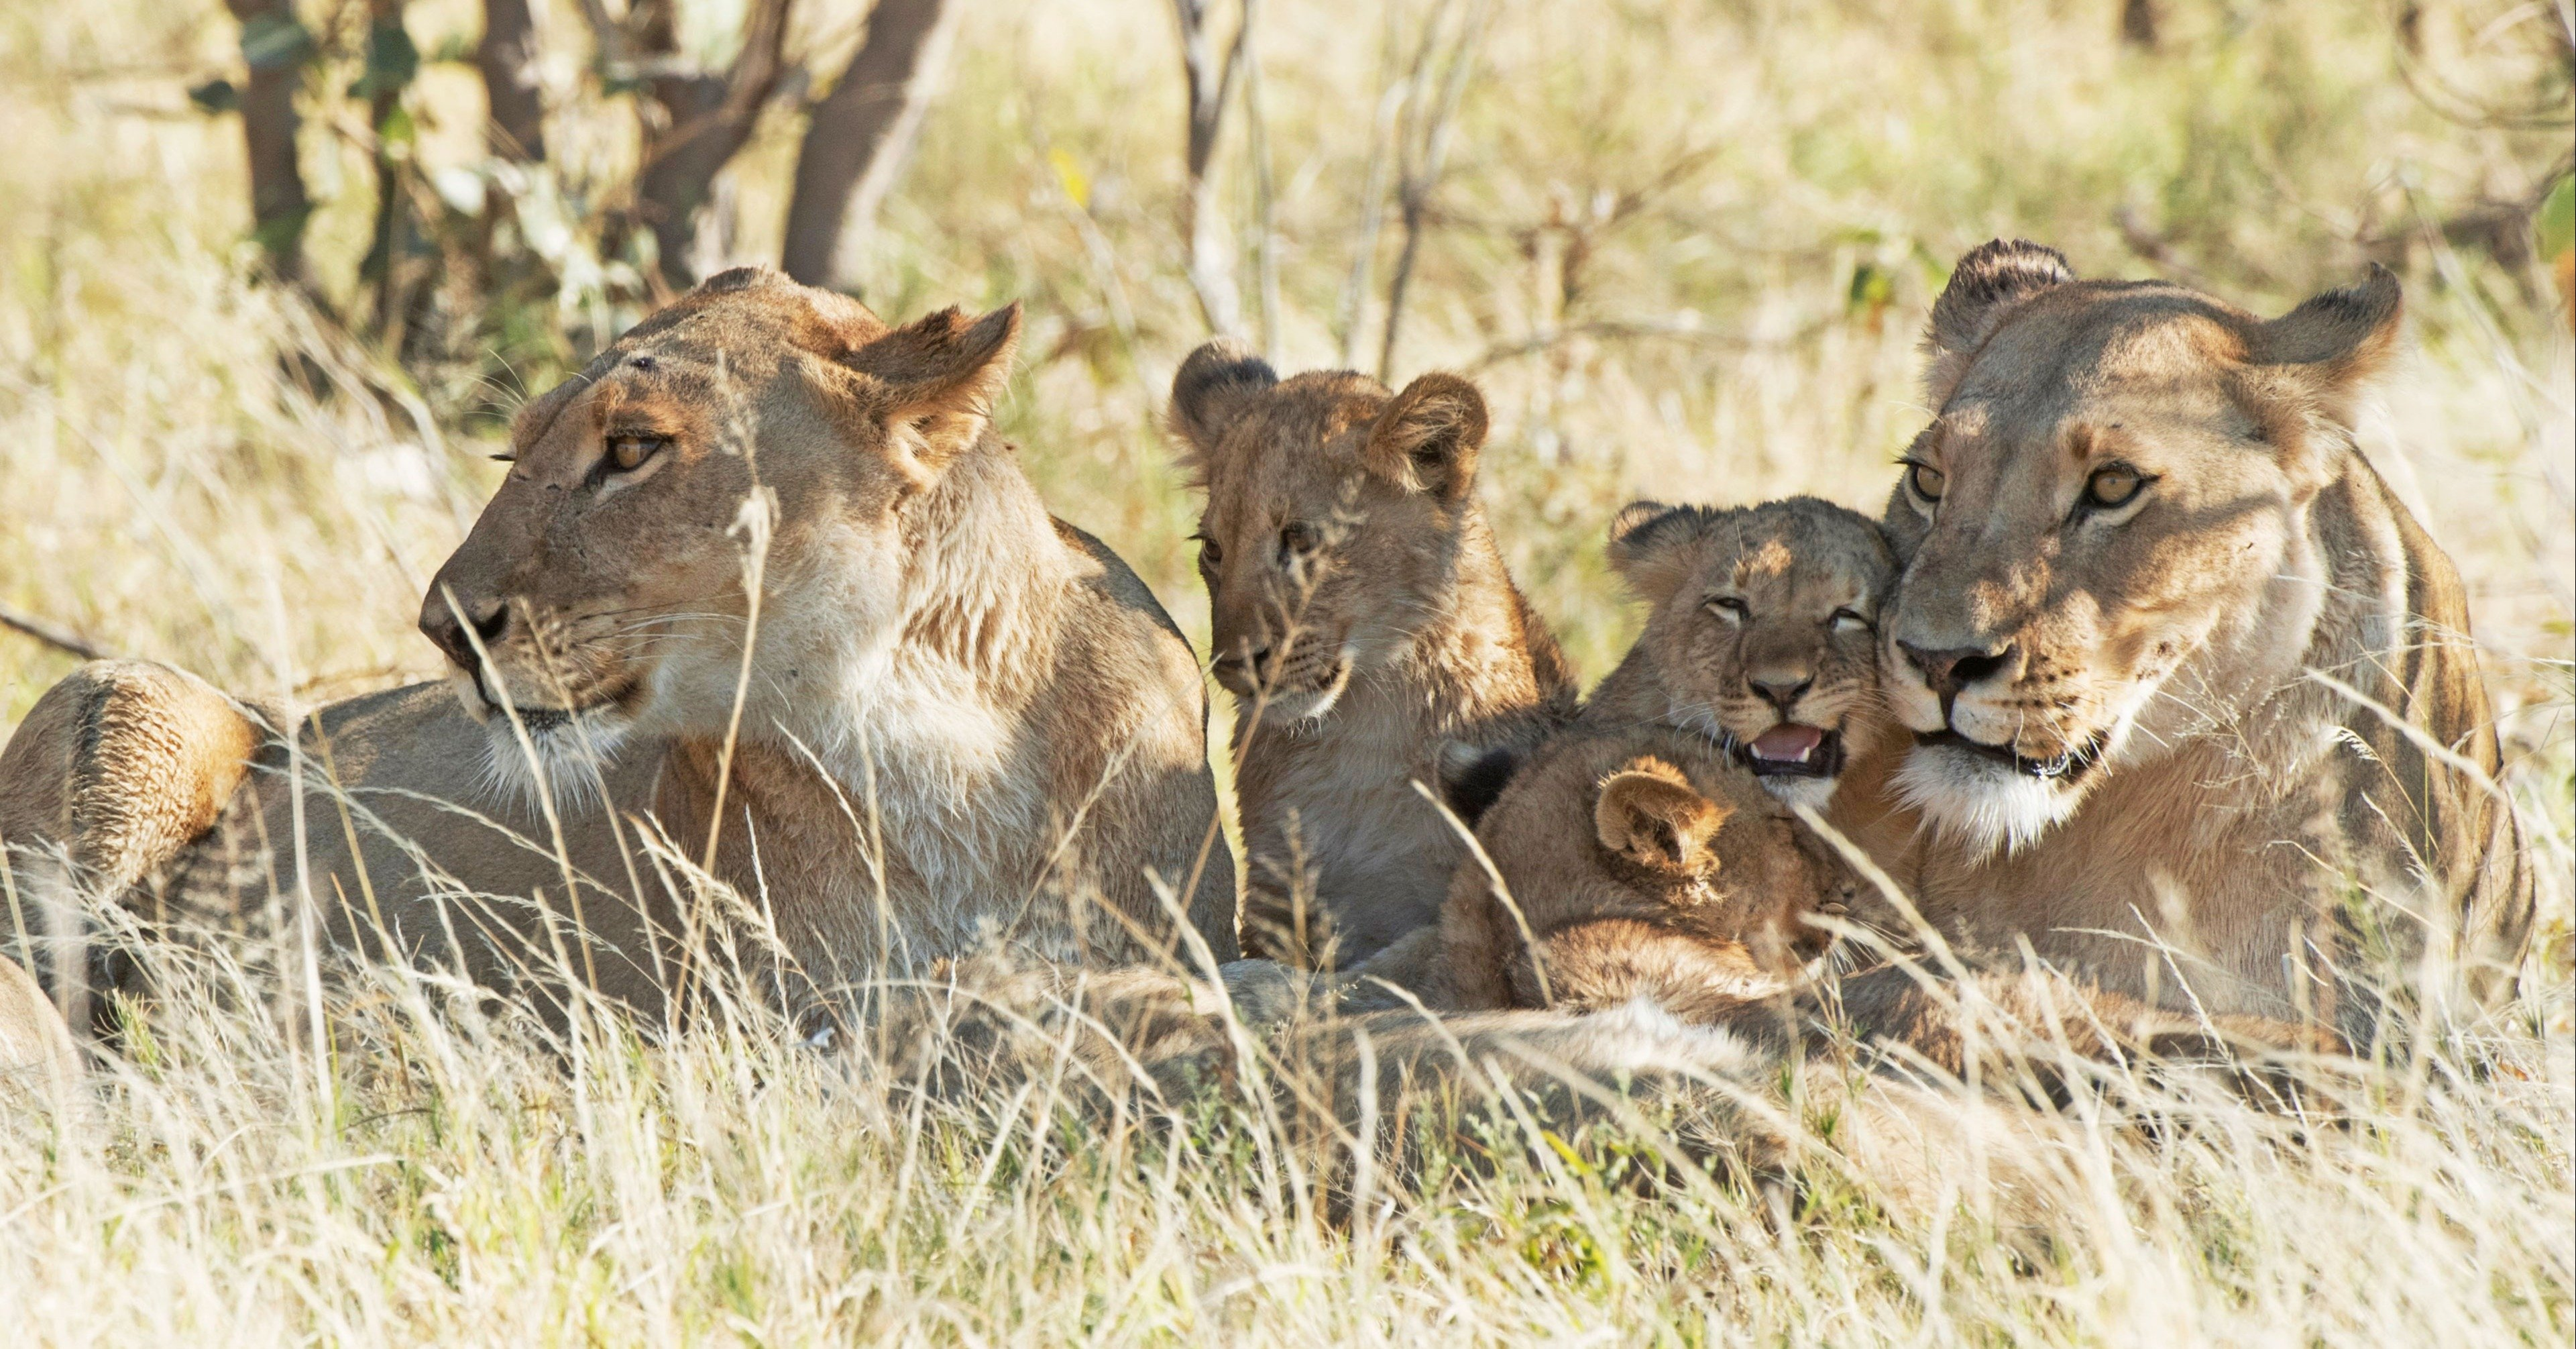 Khwai Tented Camp, Moremi Game Reserve, Botswana, lioness and baby lions_5SW1712 (176)-1